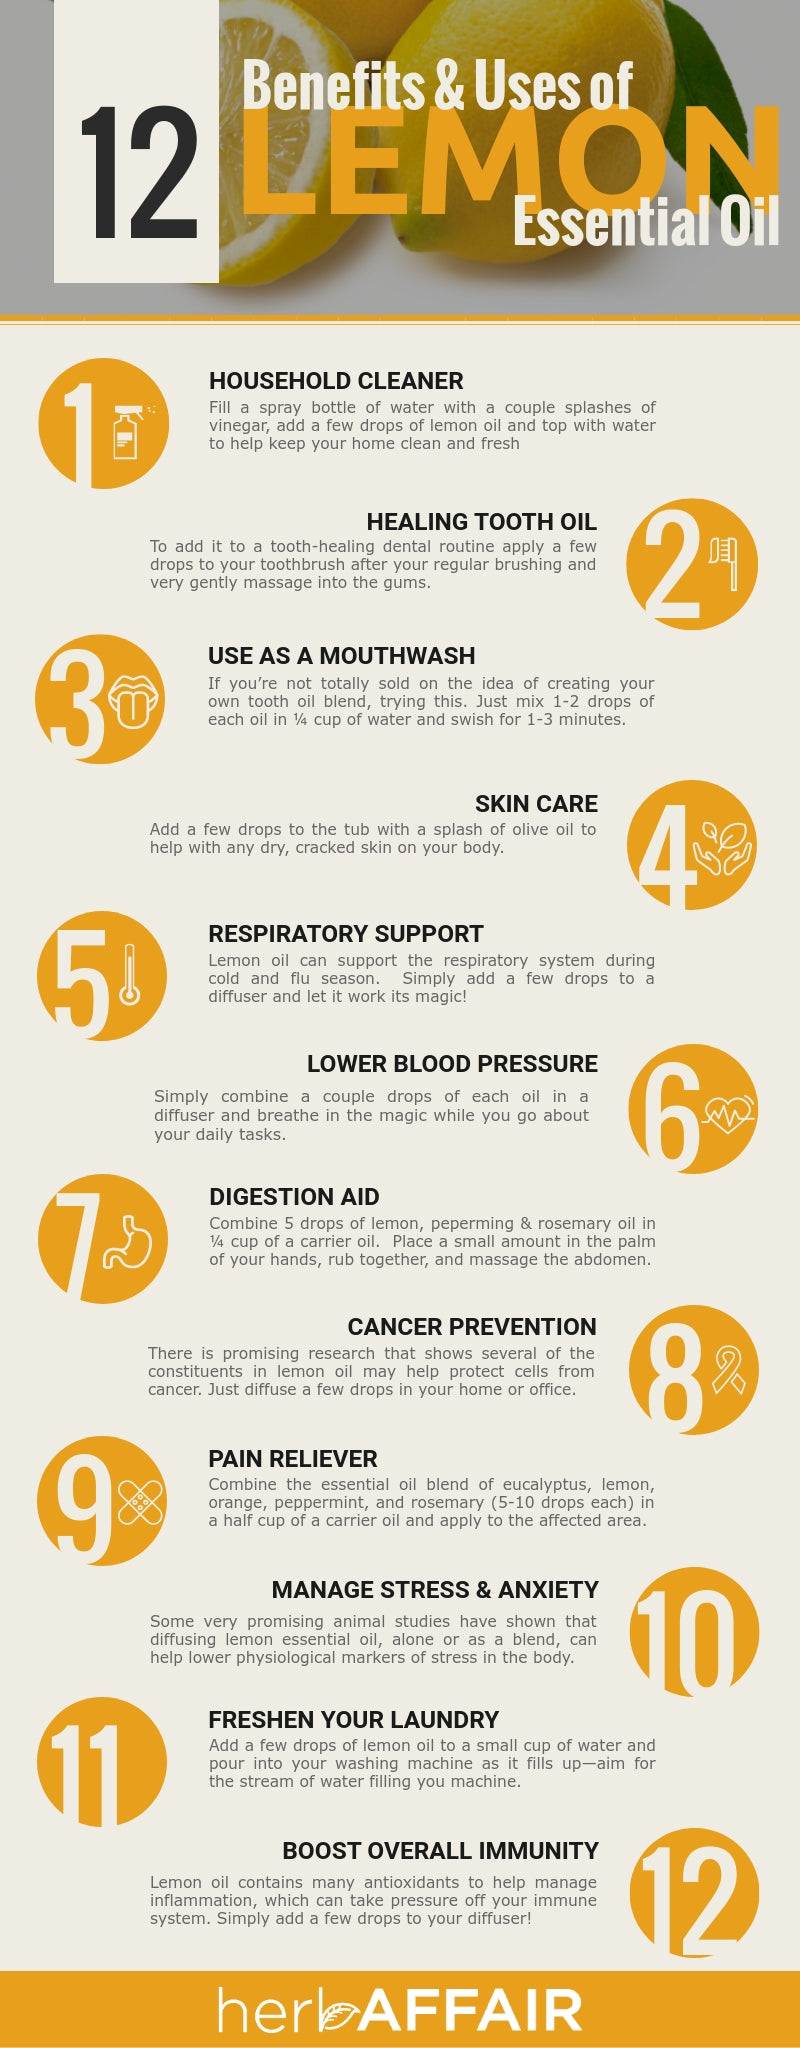 12 Benefits and Uses of Lemon Essential Oil